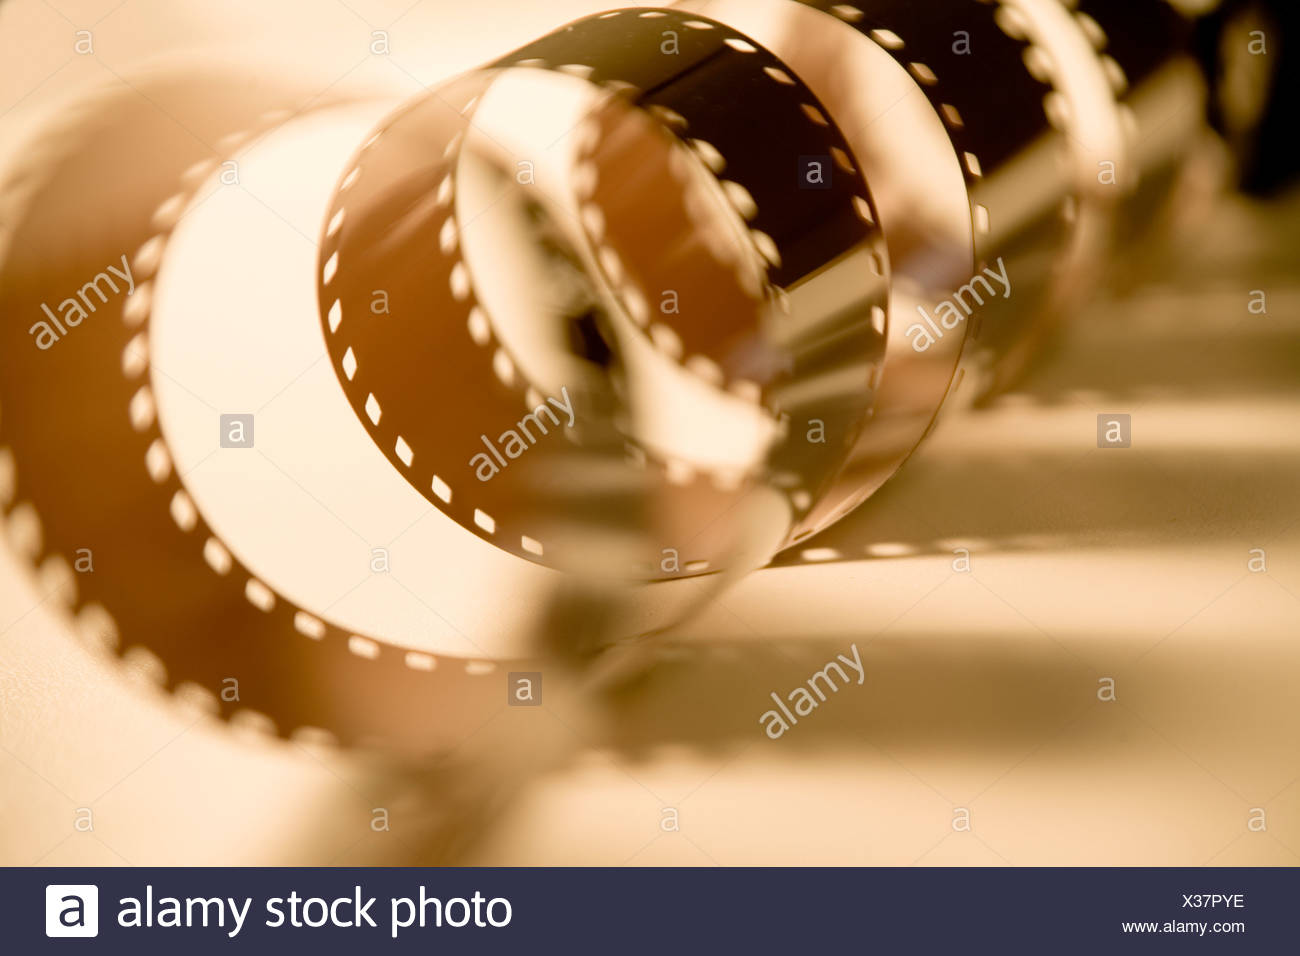 Film - Stock Image